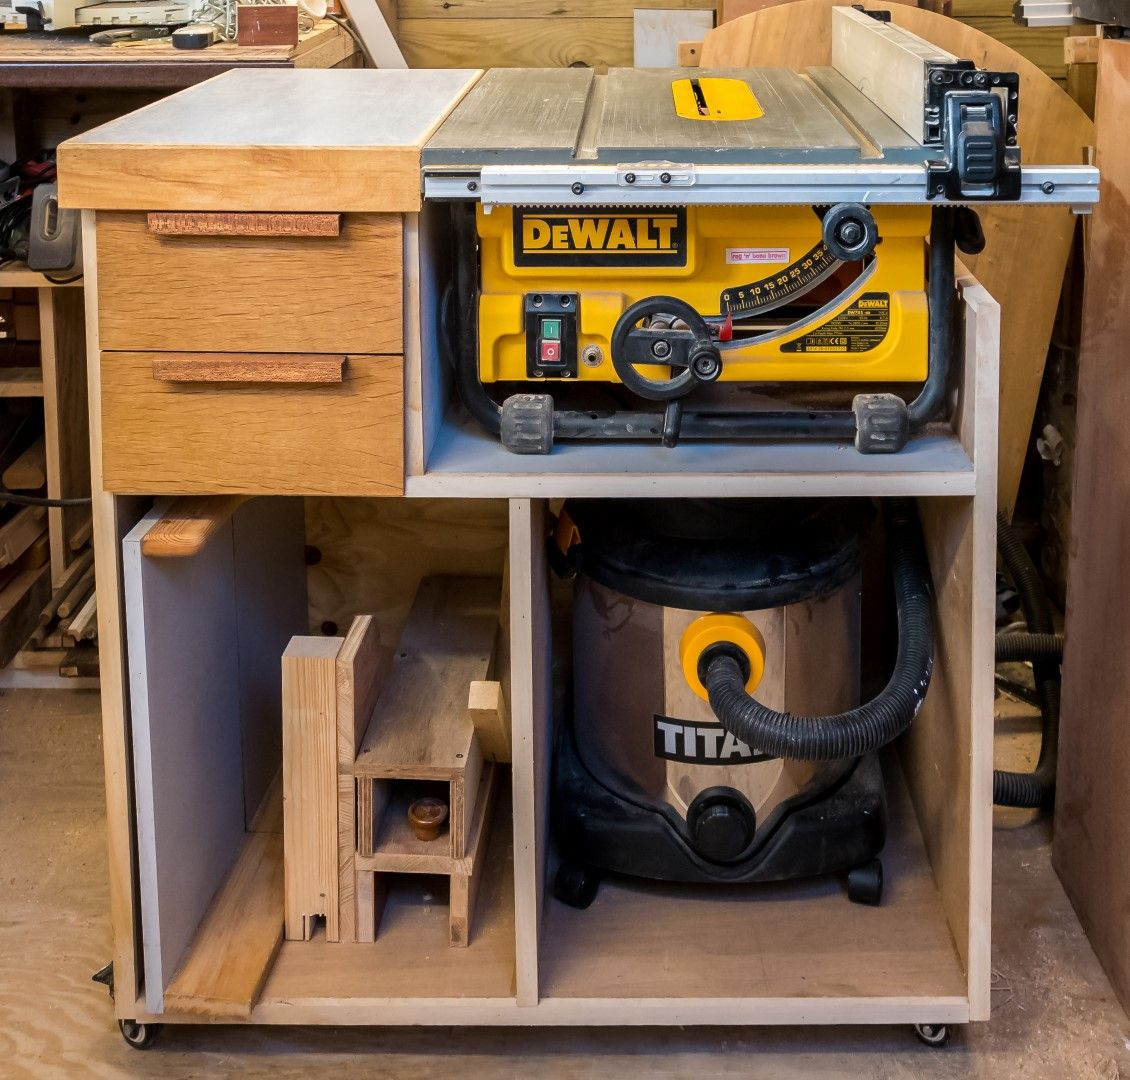 mobile tablesaw stand for dewalt dw745 part 2 of 2 workshop re model episode 3 rag 39 n. Black Bedroom Furniture Sets. Home Design Ideas